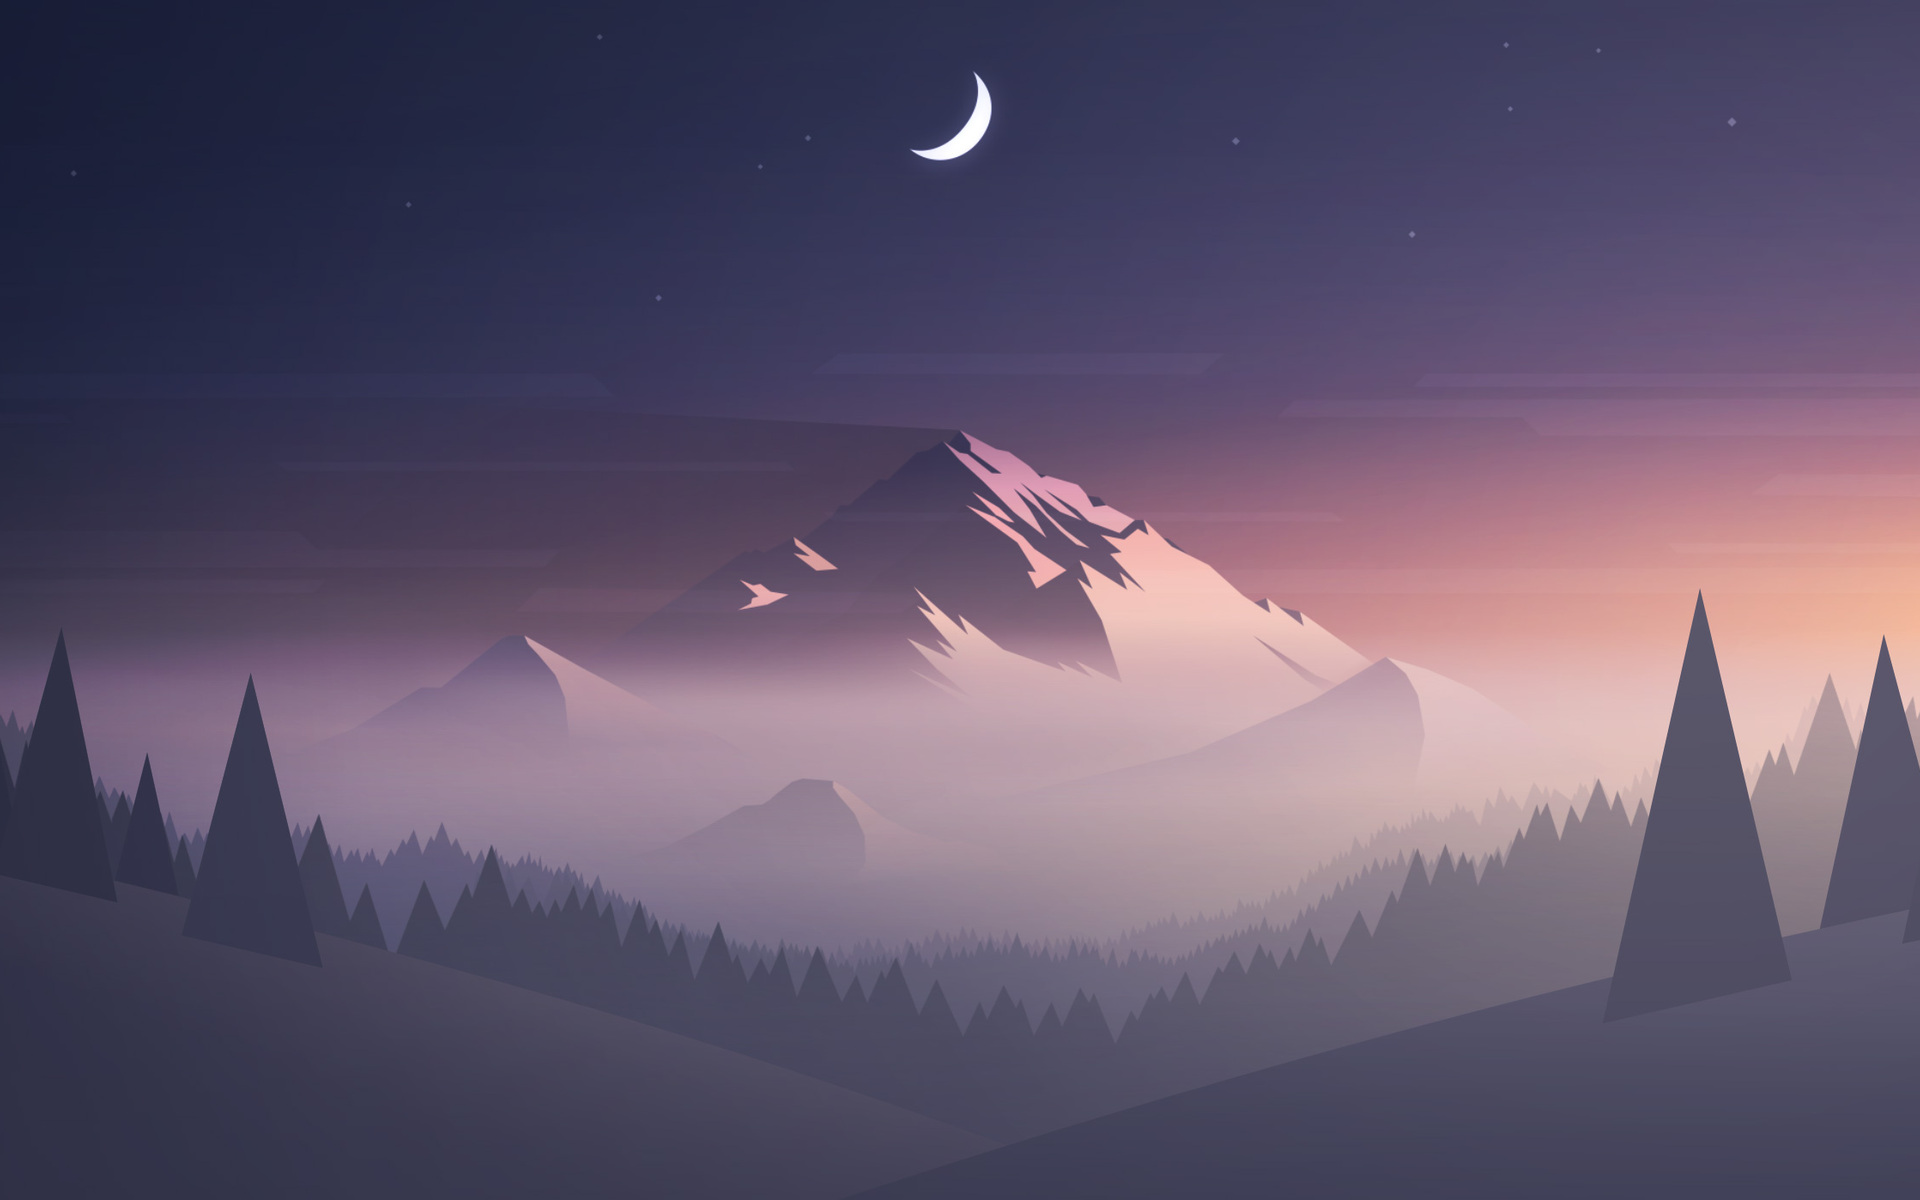 mountains-moon-trees-minimalism-hd.jpg